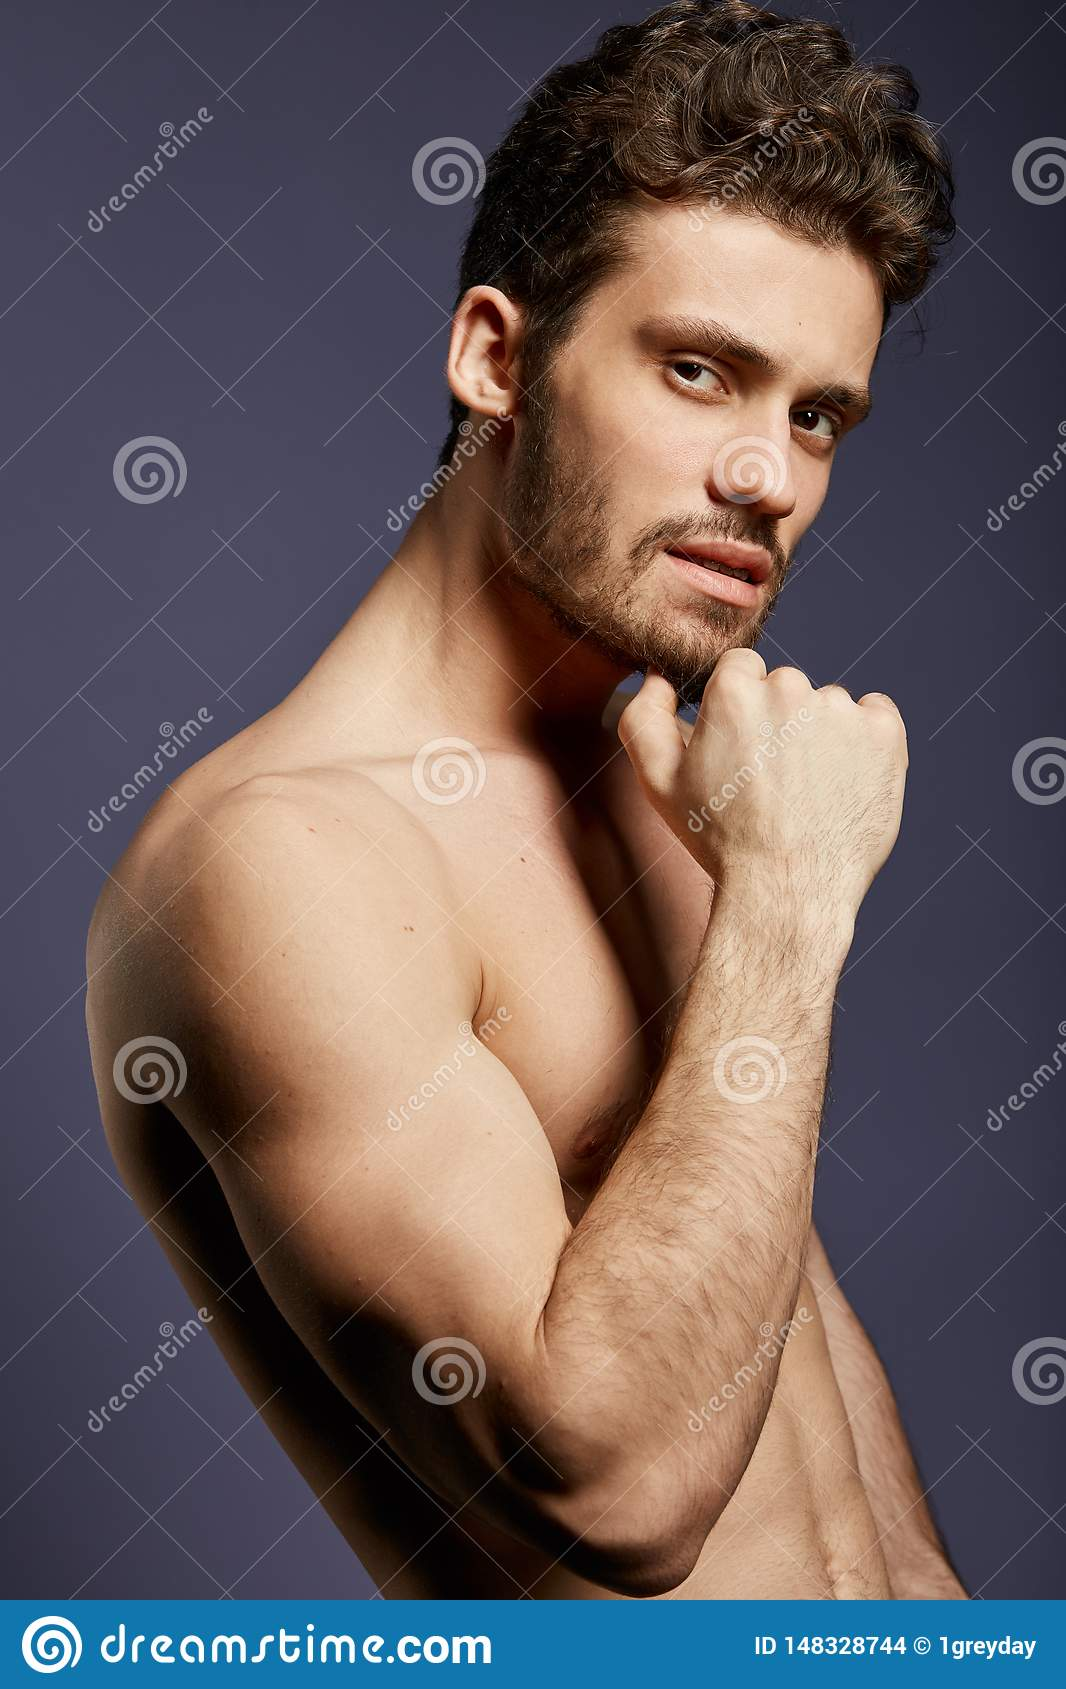 Thoughtful handsome athlete making serious decision